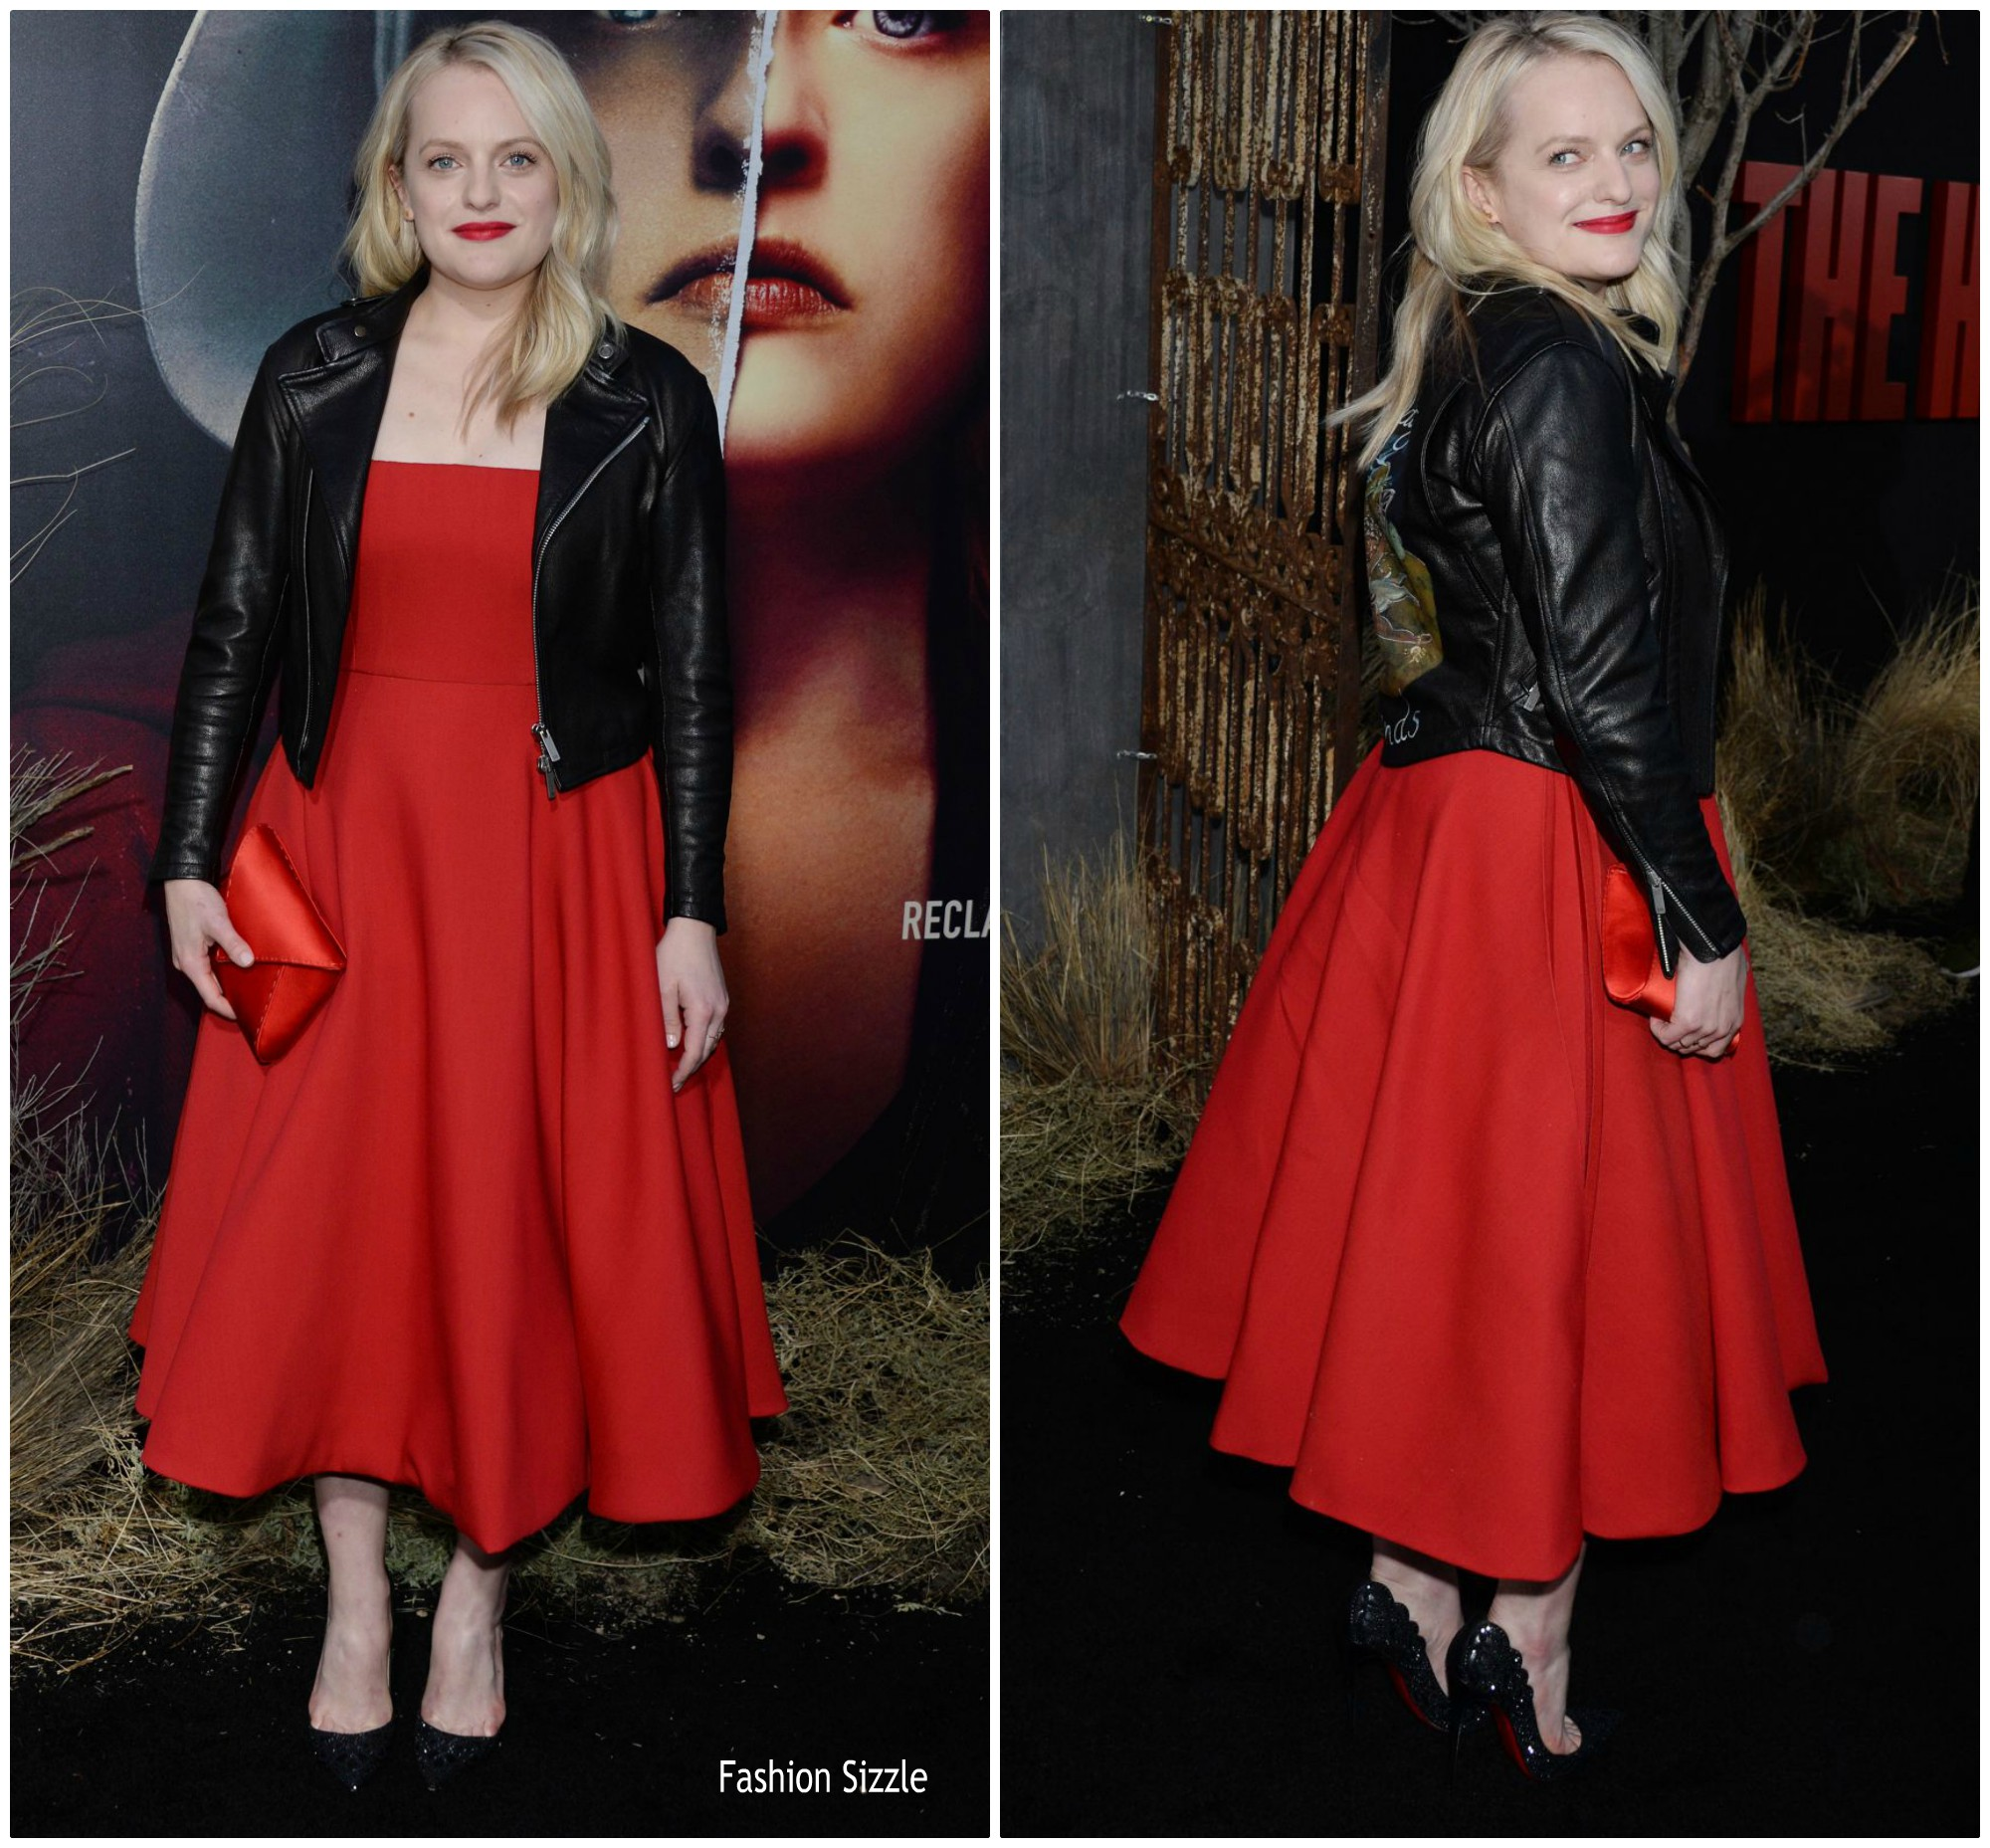 elisabeth-moss-in-christian-dior-the-handmaids-tale-seasone-2-premiere